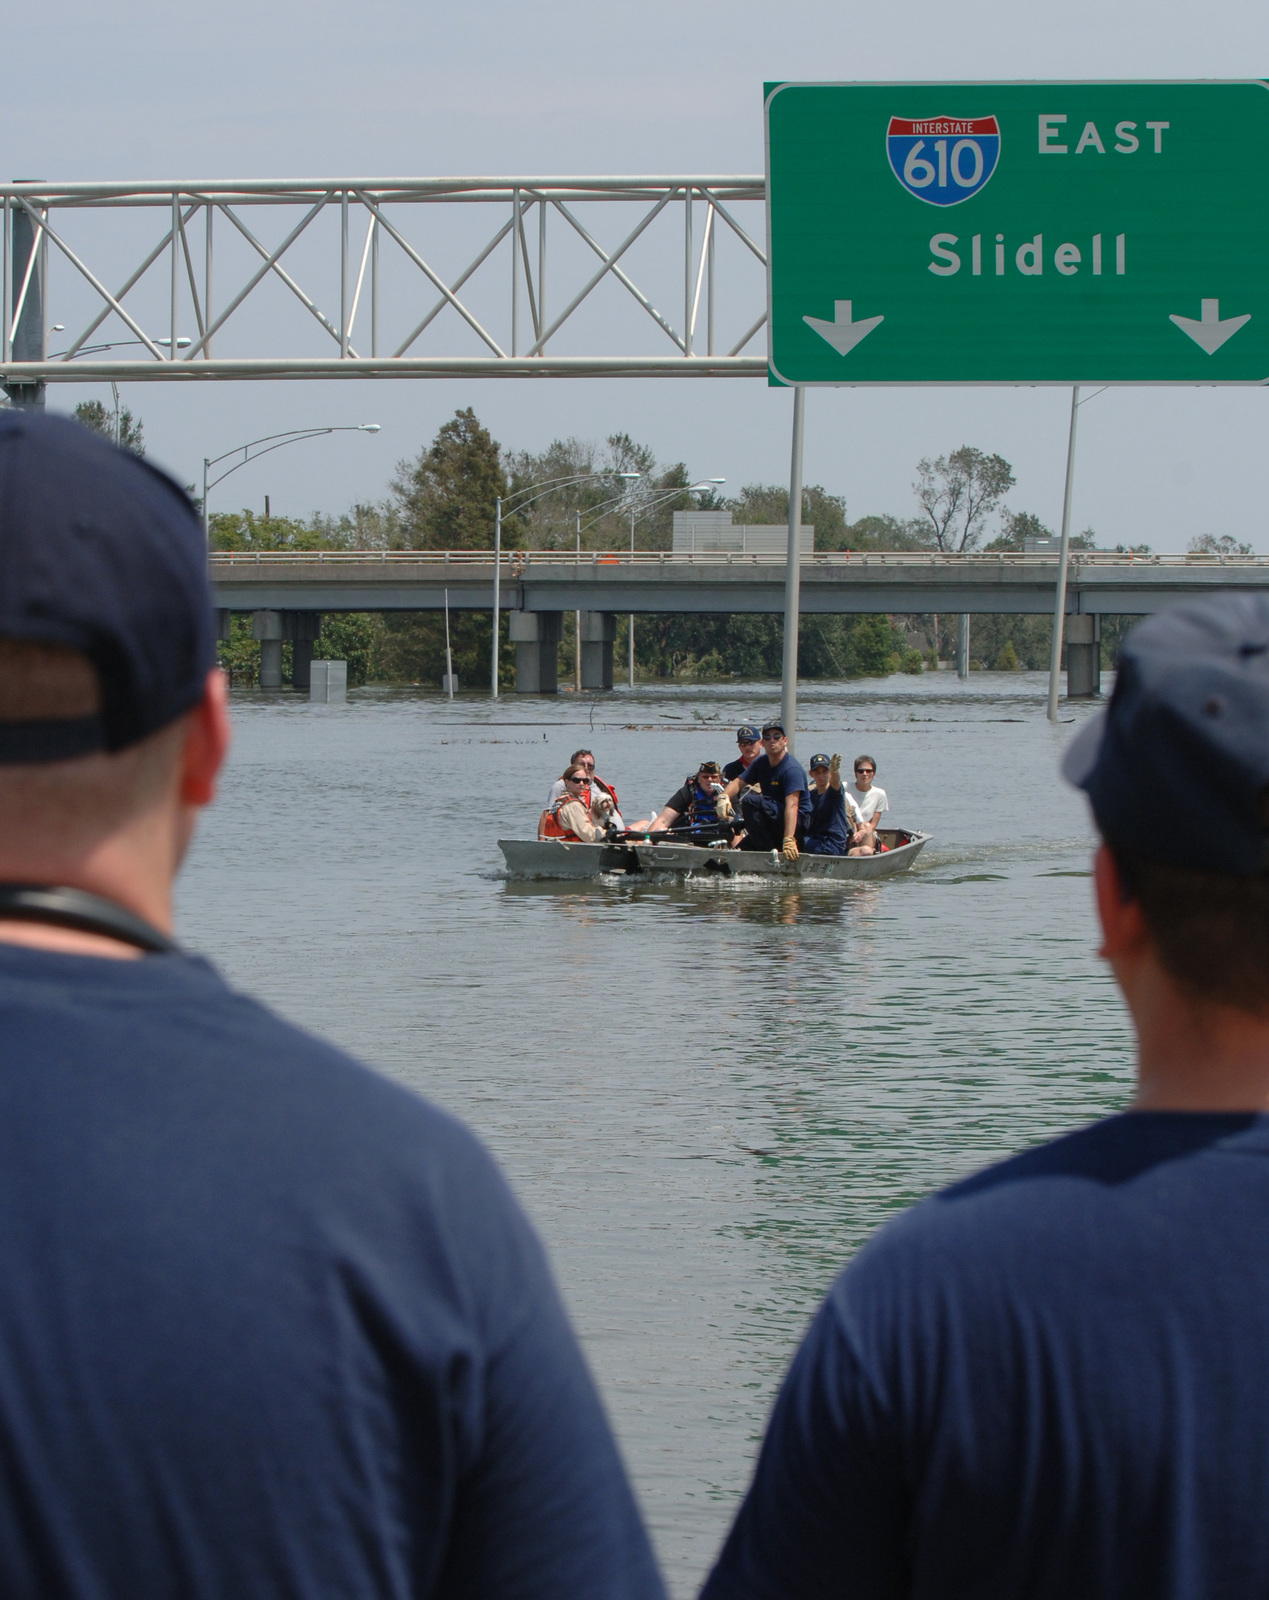 [Hurricane Katrina] New Orleans, LA, August 30, 2005 -- An Urban Search and Rescue Team bring victims of the flood waters of New Orleans to dry land by boat.  New Orleans was evacuated following the breaks in the levees as a result of hurricane Katrina.  Jocelyn Augustino/FEMA